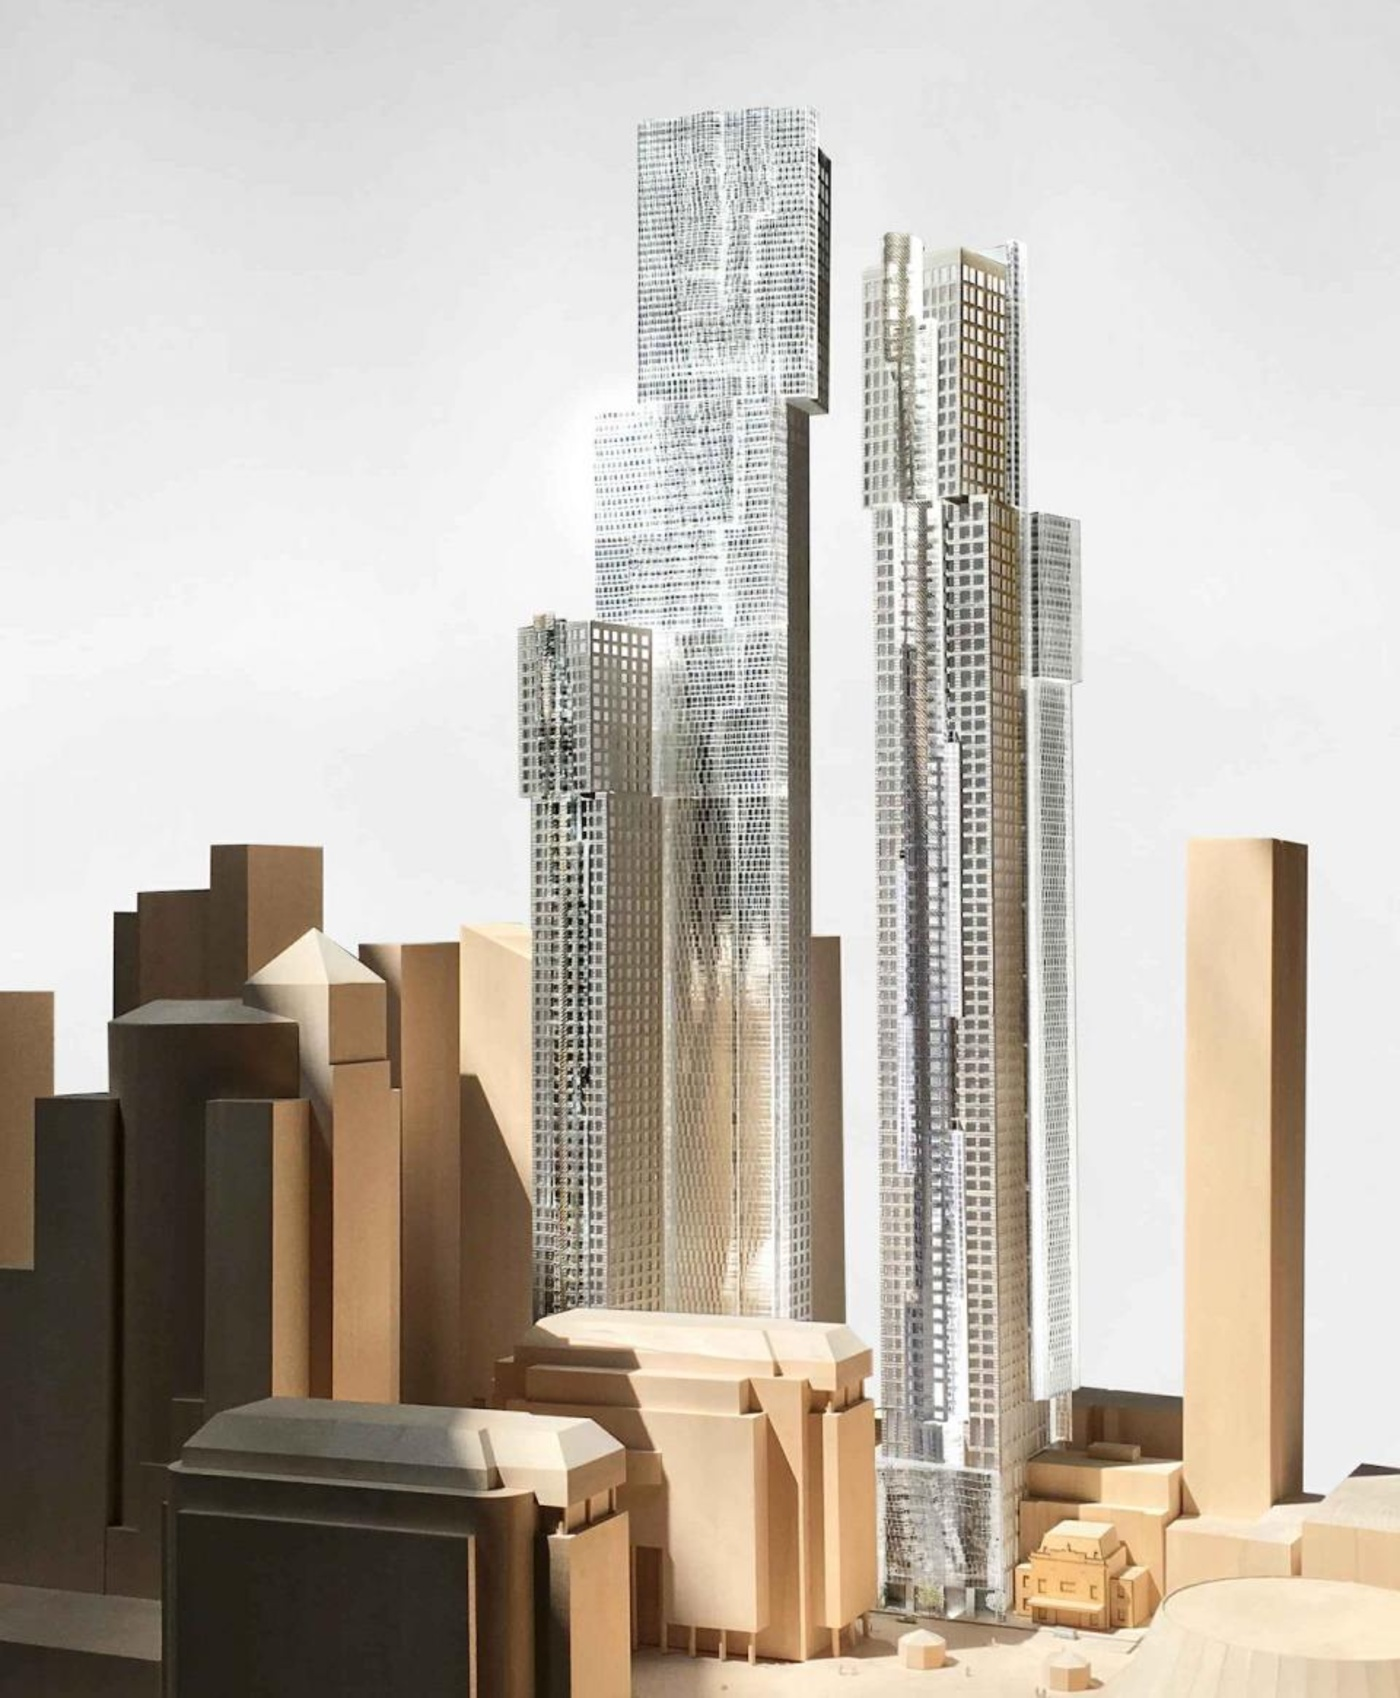 mirvish gehry buildings